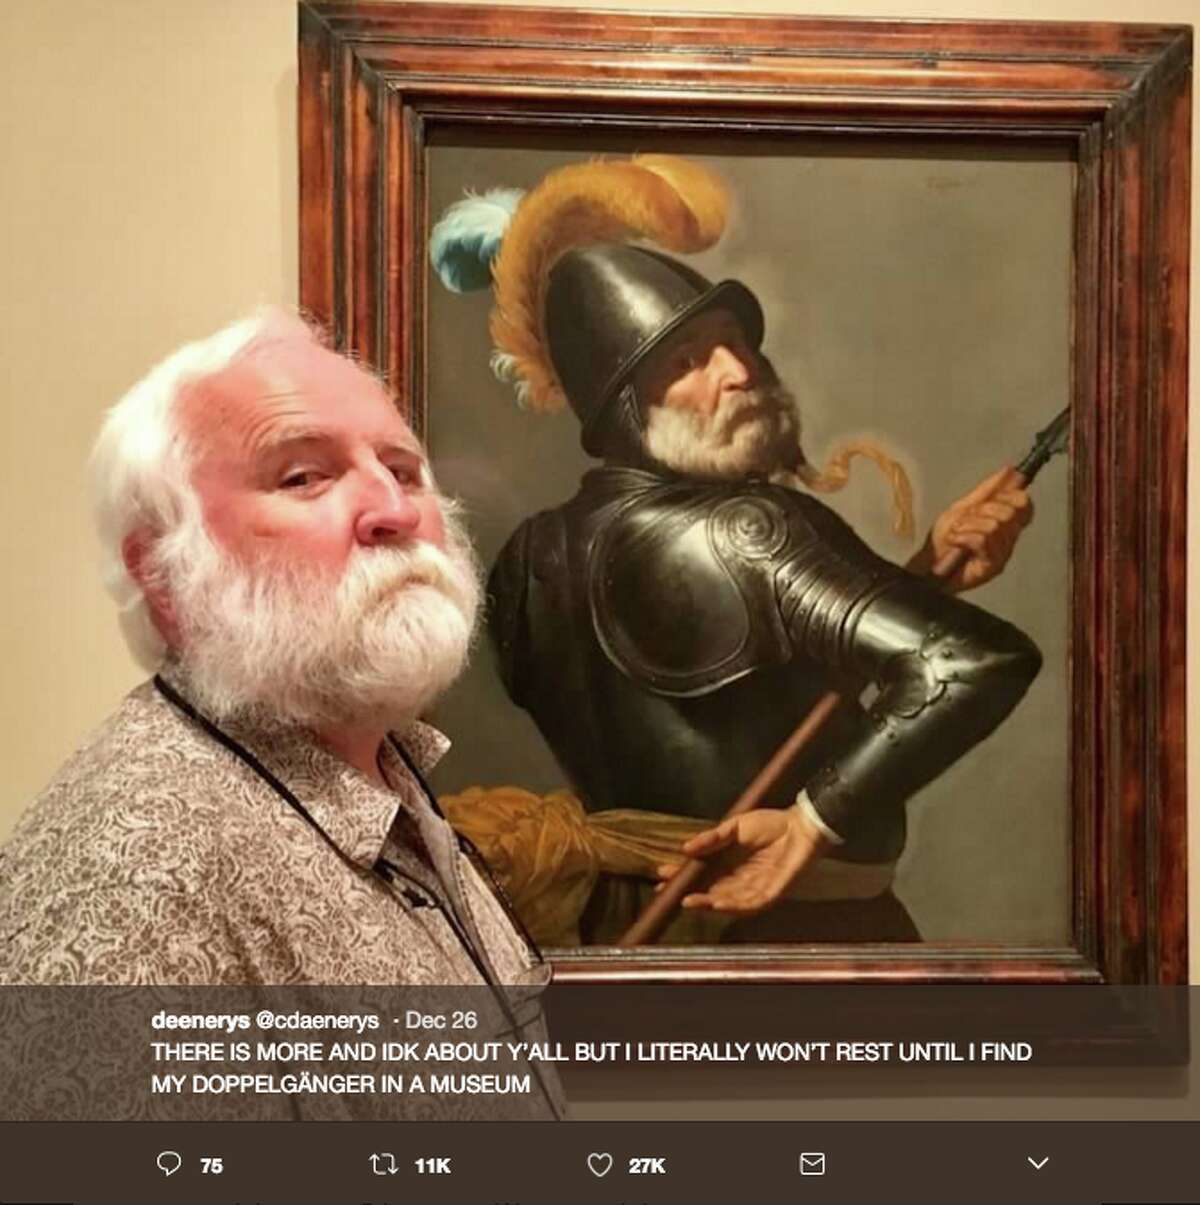 People found their doppelgangers in art museums and shared the uncanny resemblances on Twitter.